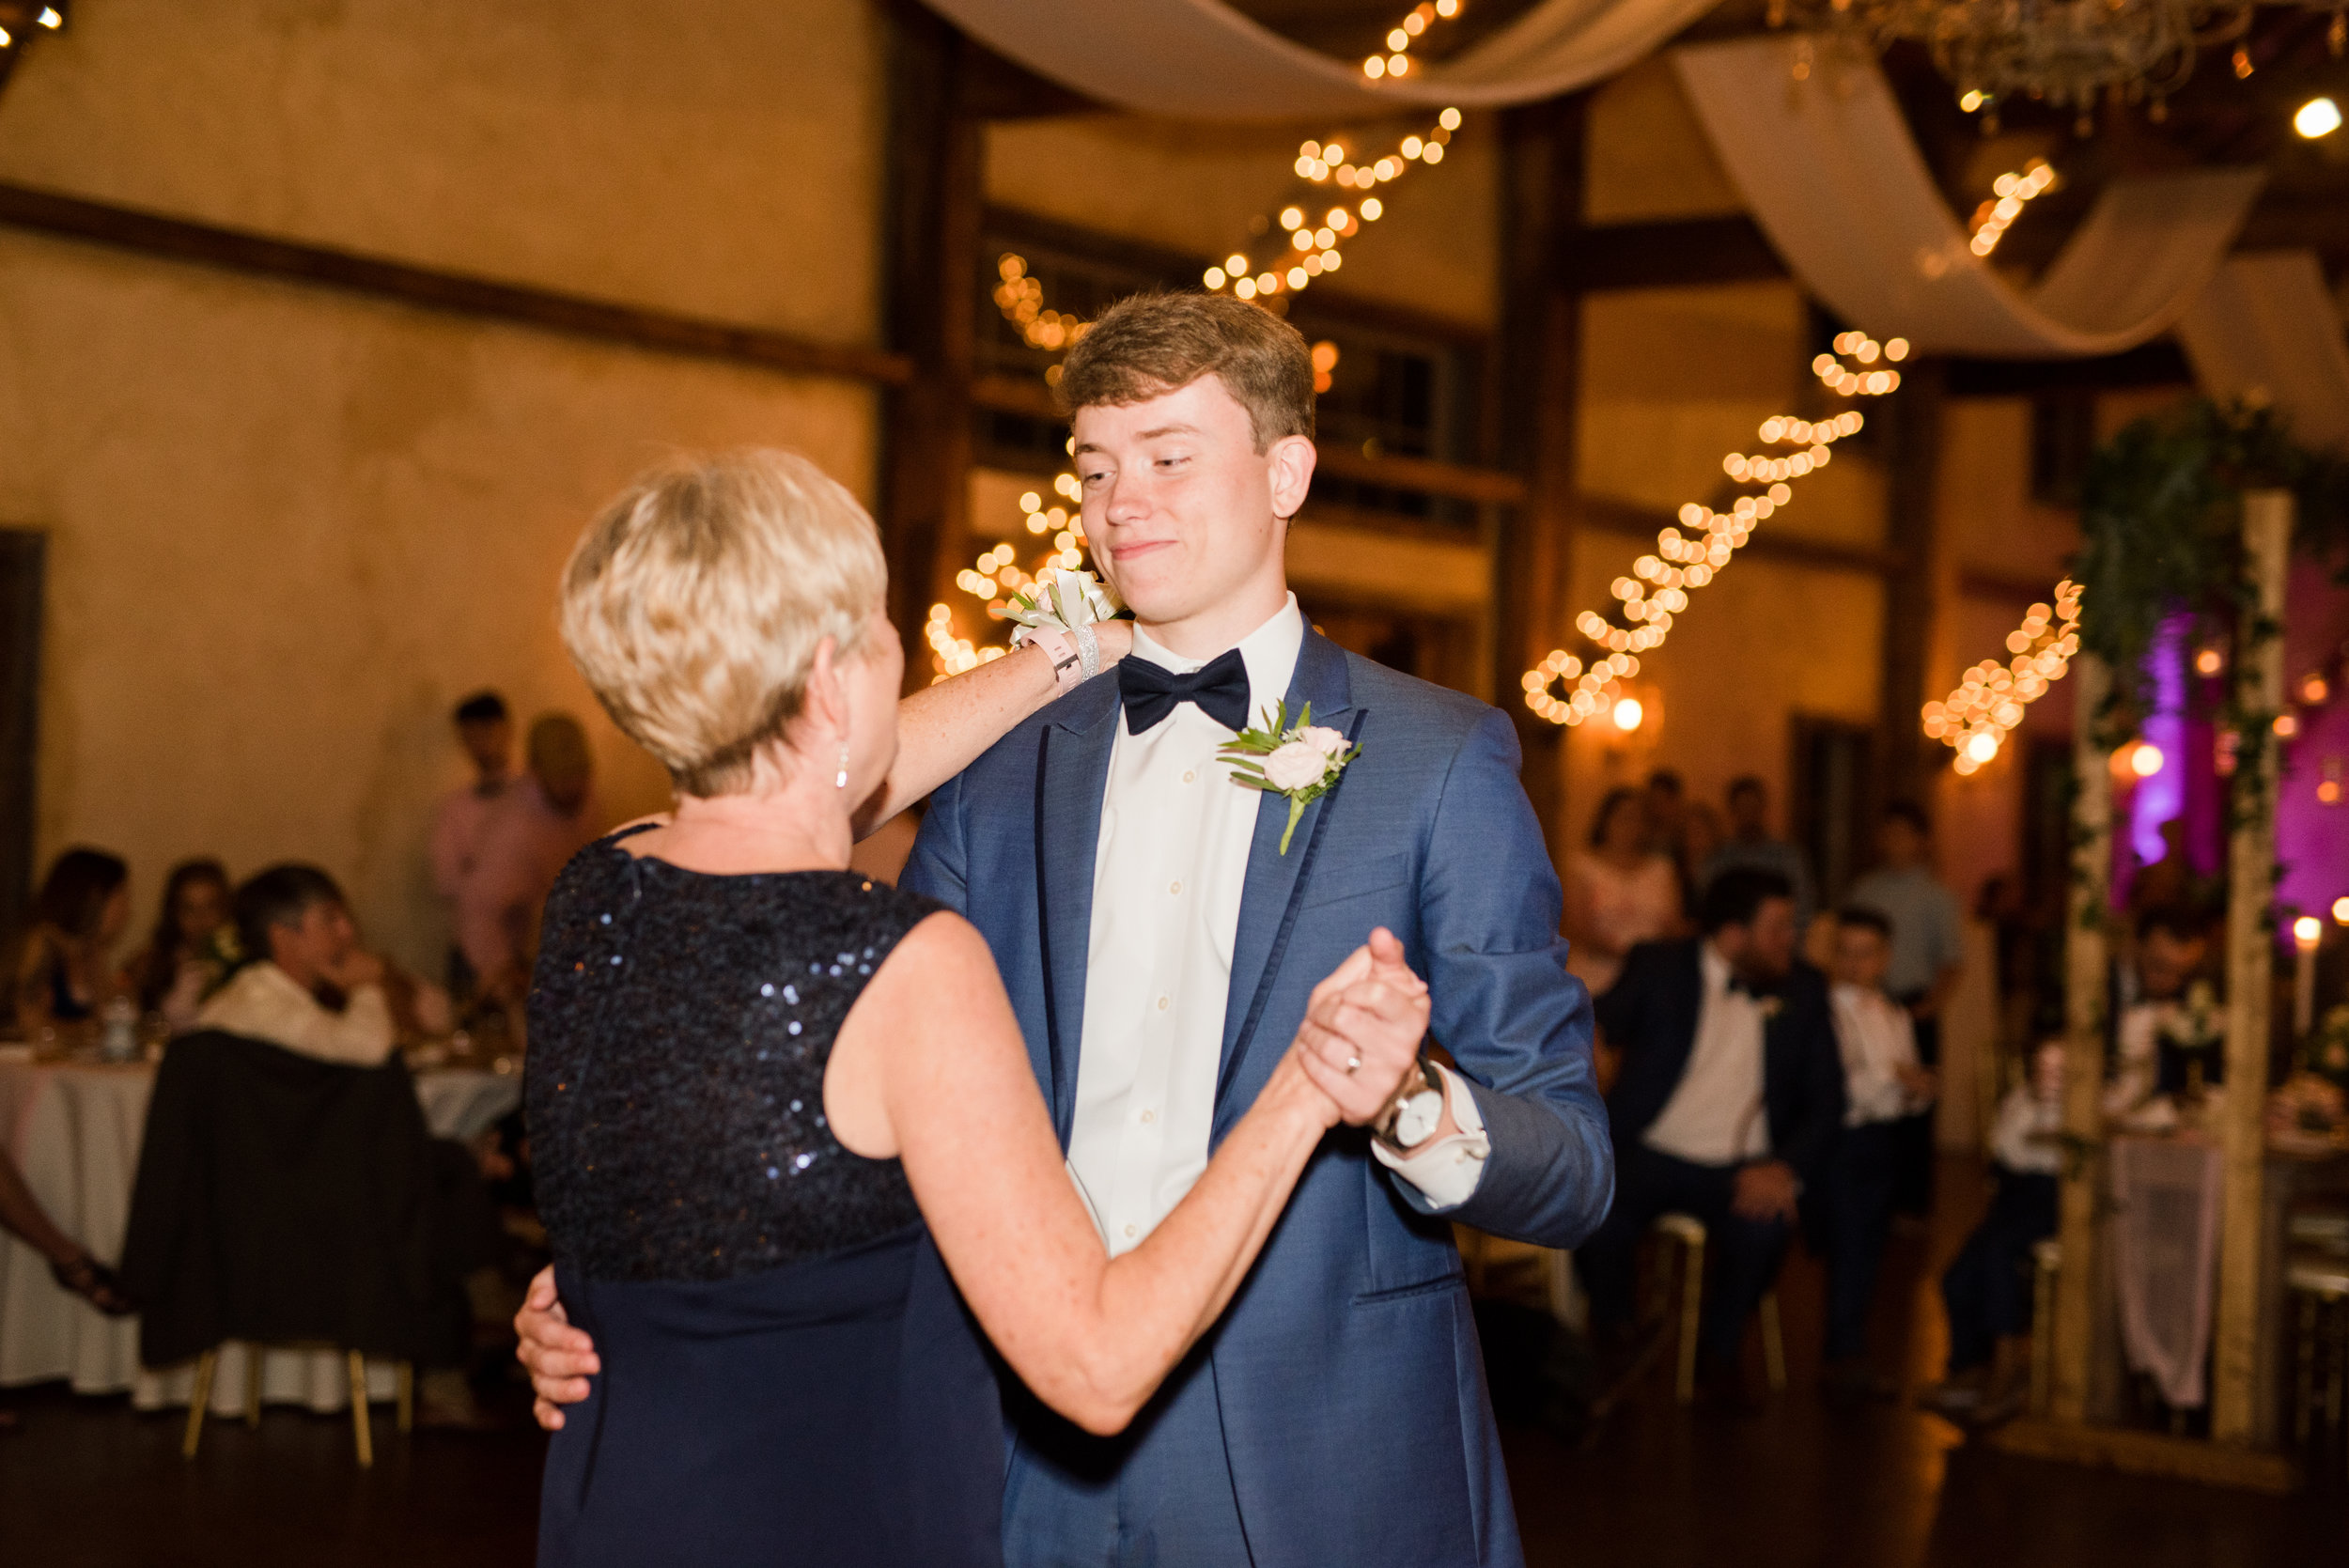 The Barn at Bridlewood wedding in Hattiesburg, Mississippi (MS) in June | Groom's mom and Groom Wedding Dance